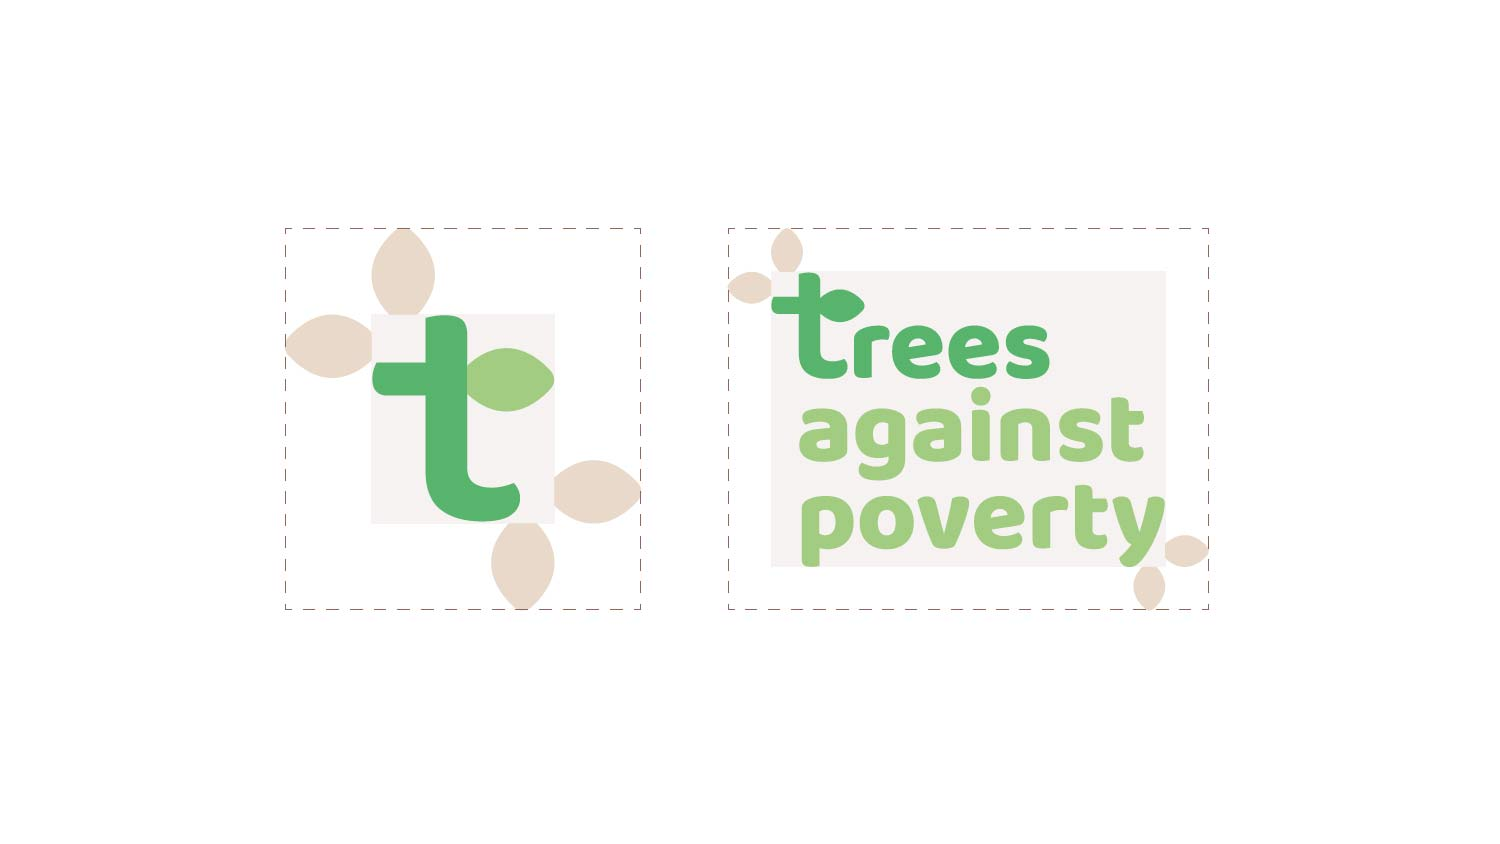 Trees agains poverty